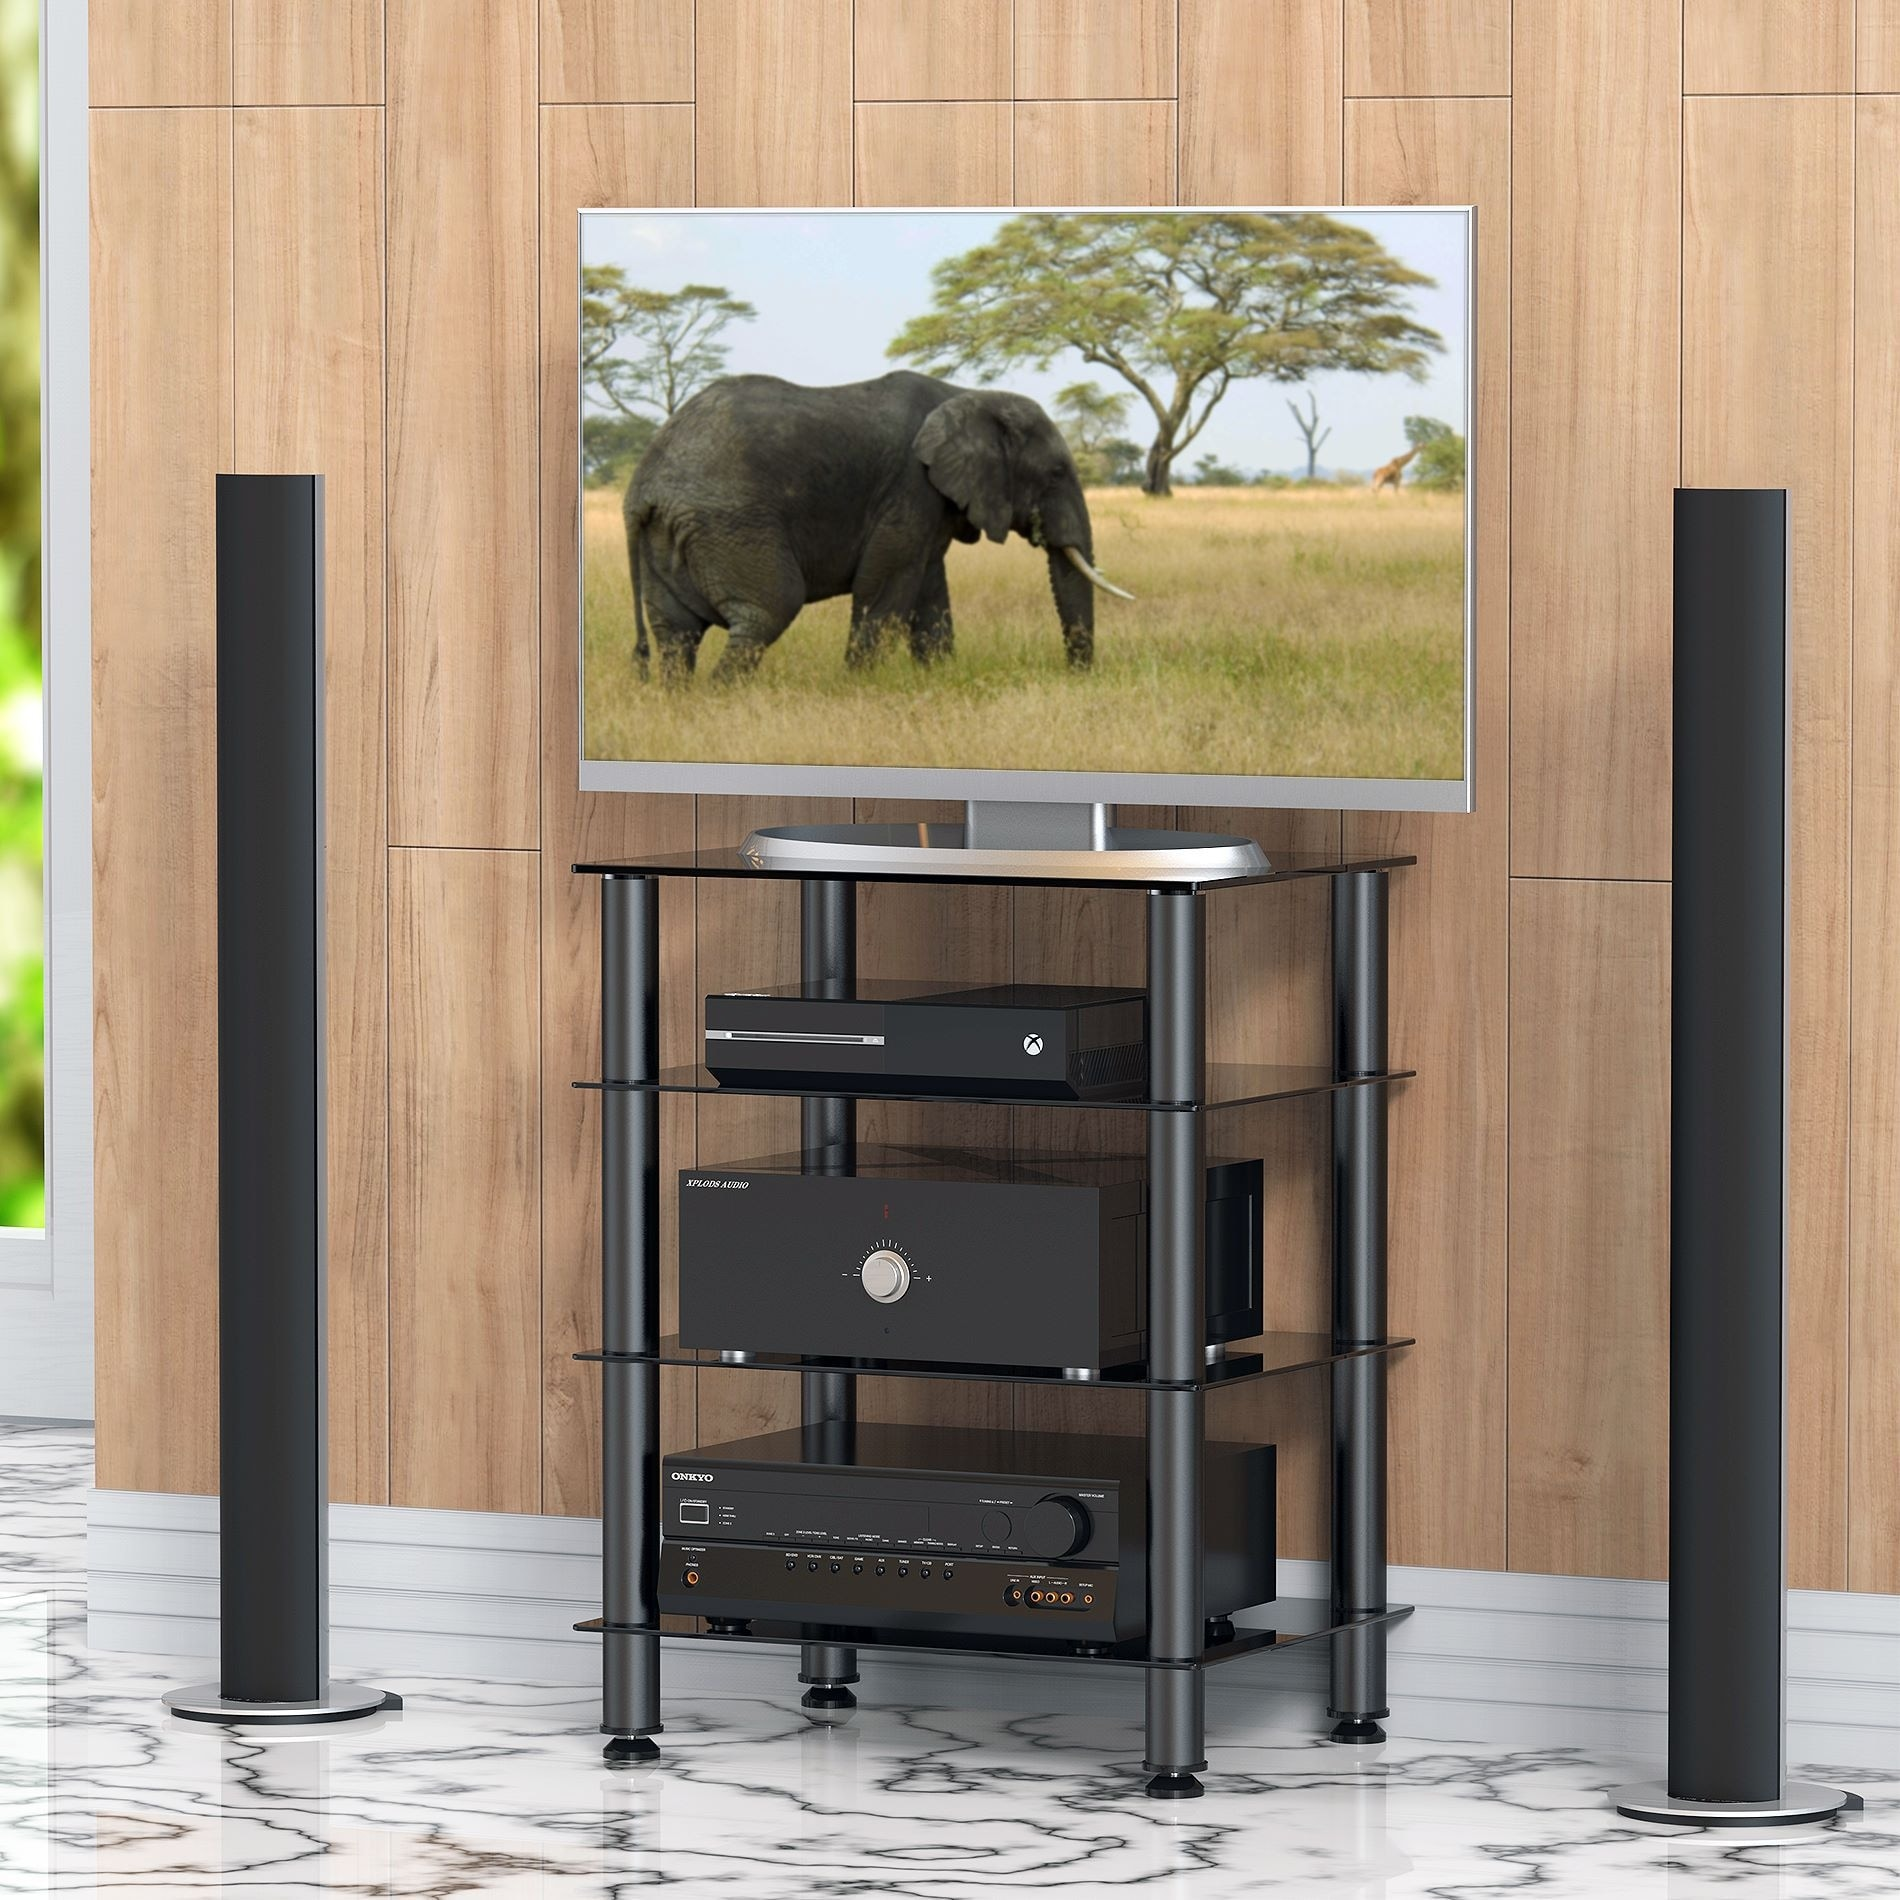 audio stylish home cabinet reisa image modern glass of component by video decor